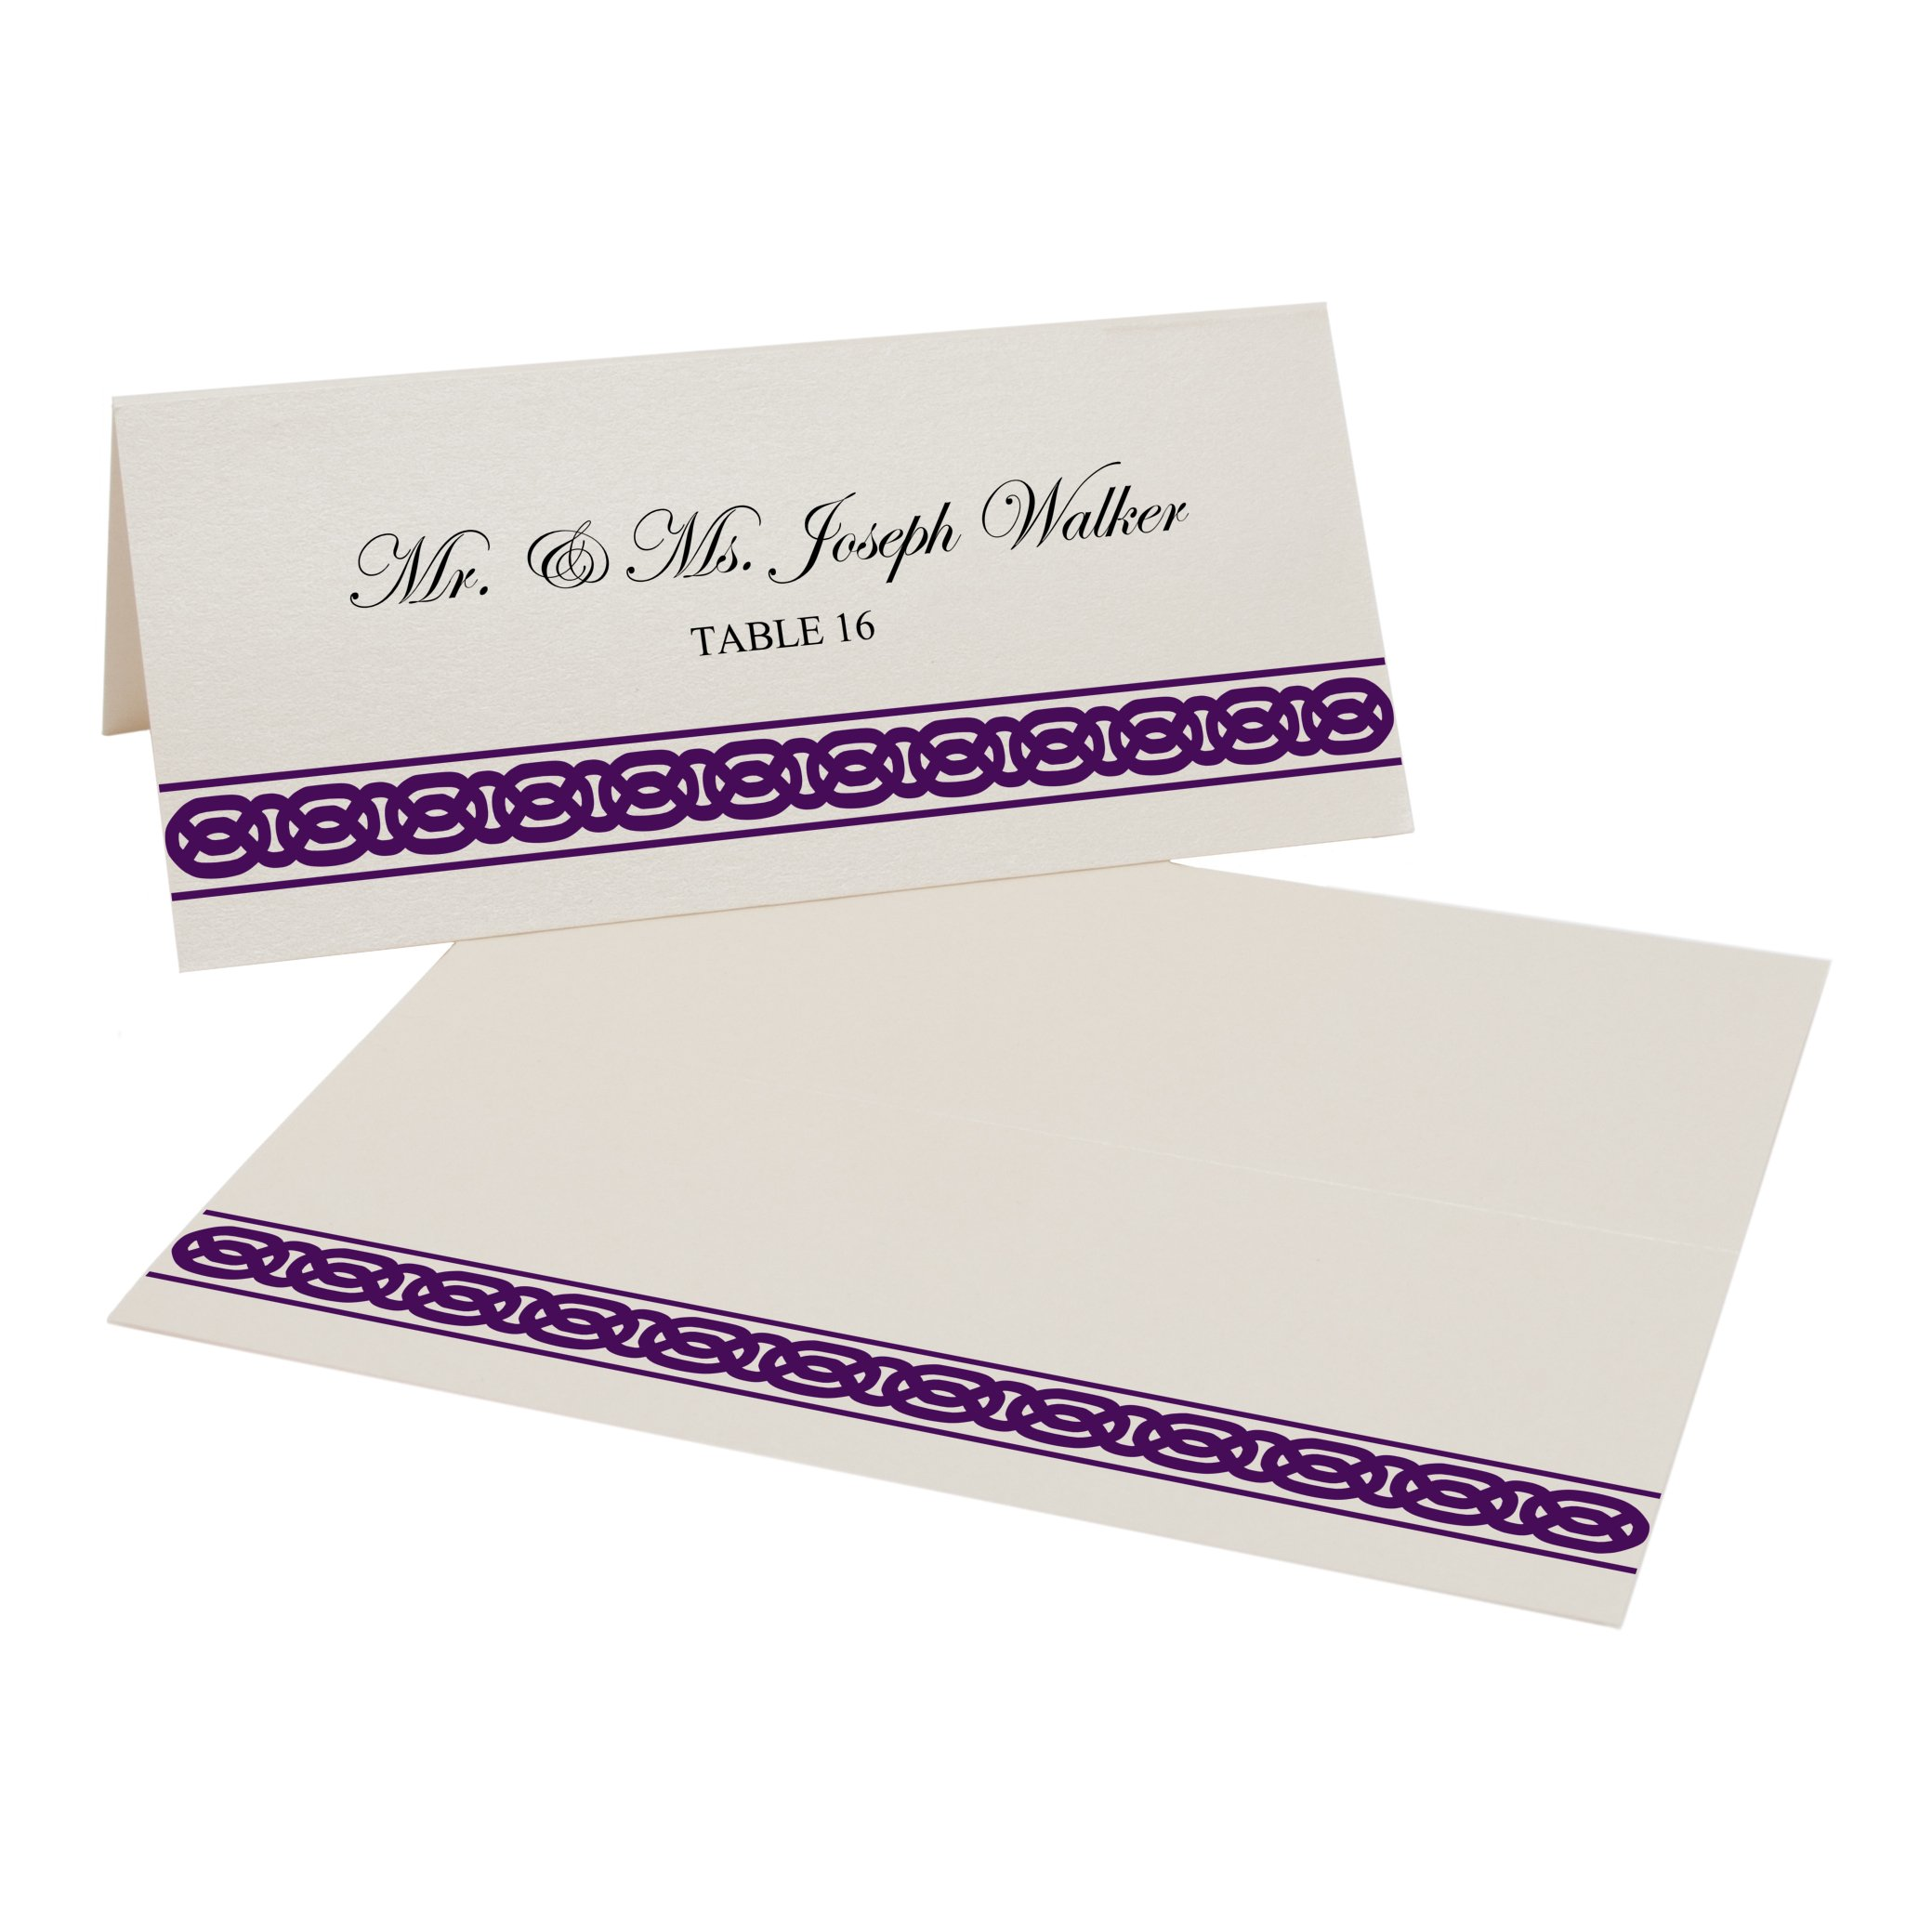 Celtic Band Border Easy Print Place Cards, Champagne, Eggplant, Set of 450 (113 Sheets) by Documents and Designs